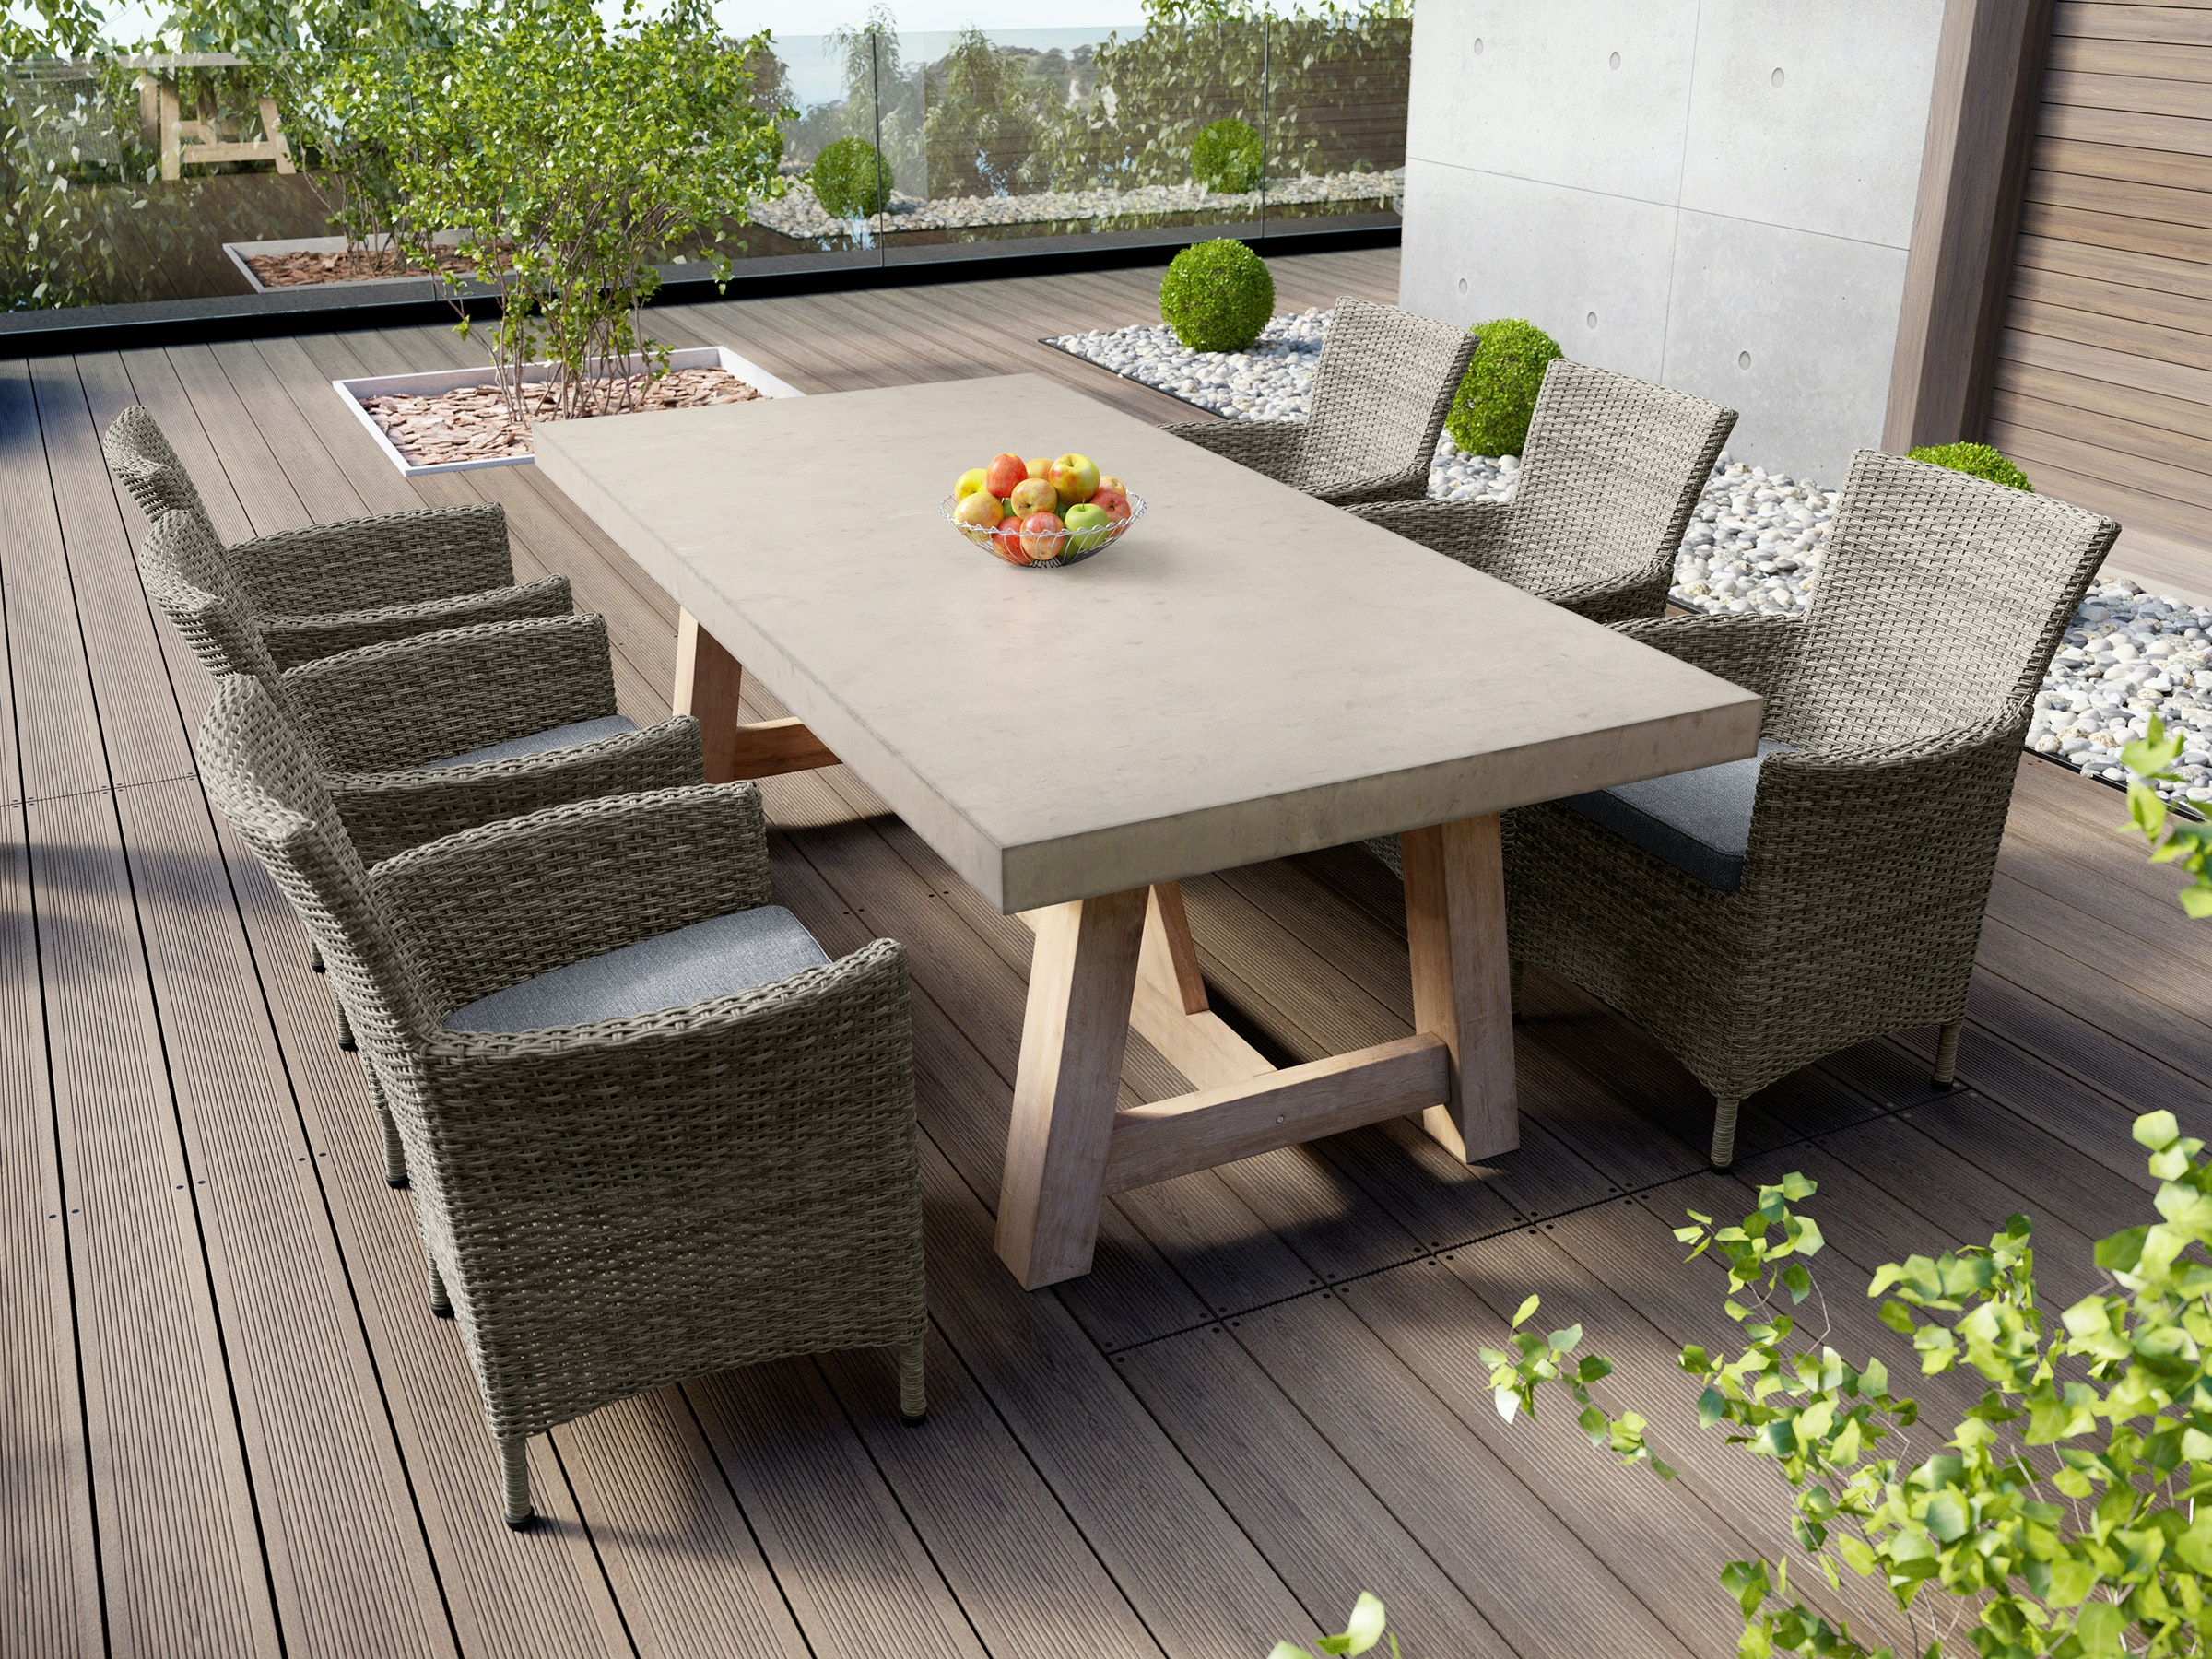 Tate Concrete Outdoor Dining Table with Elba Rattan Chairs - Dining Sets - Outdoor Furniture - Home u0026 Outdoor Living Trade Tested & Tate Concrete Outdoor Dining Table with Elba Rattan Chairs - Dining ...